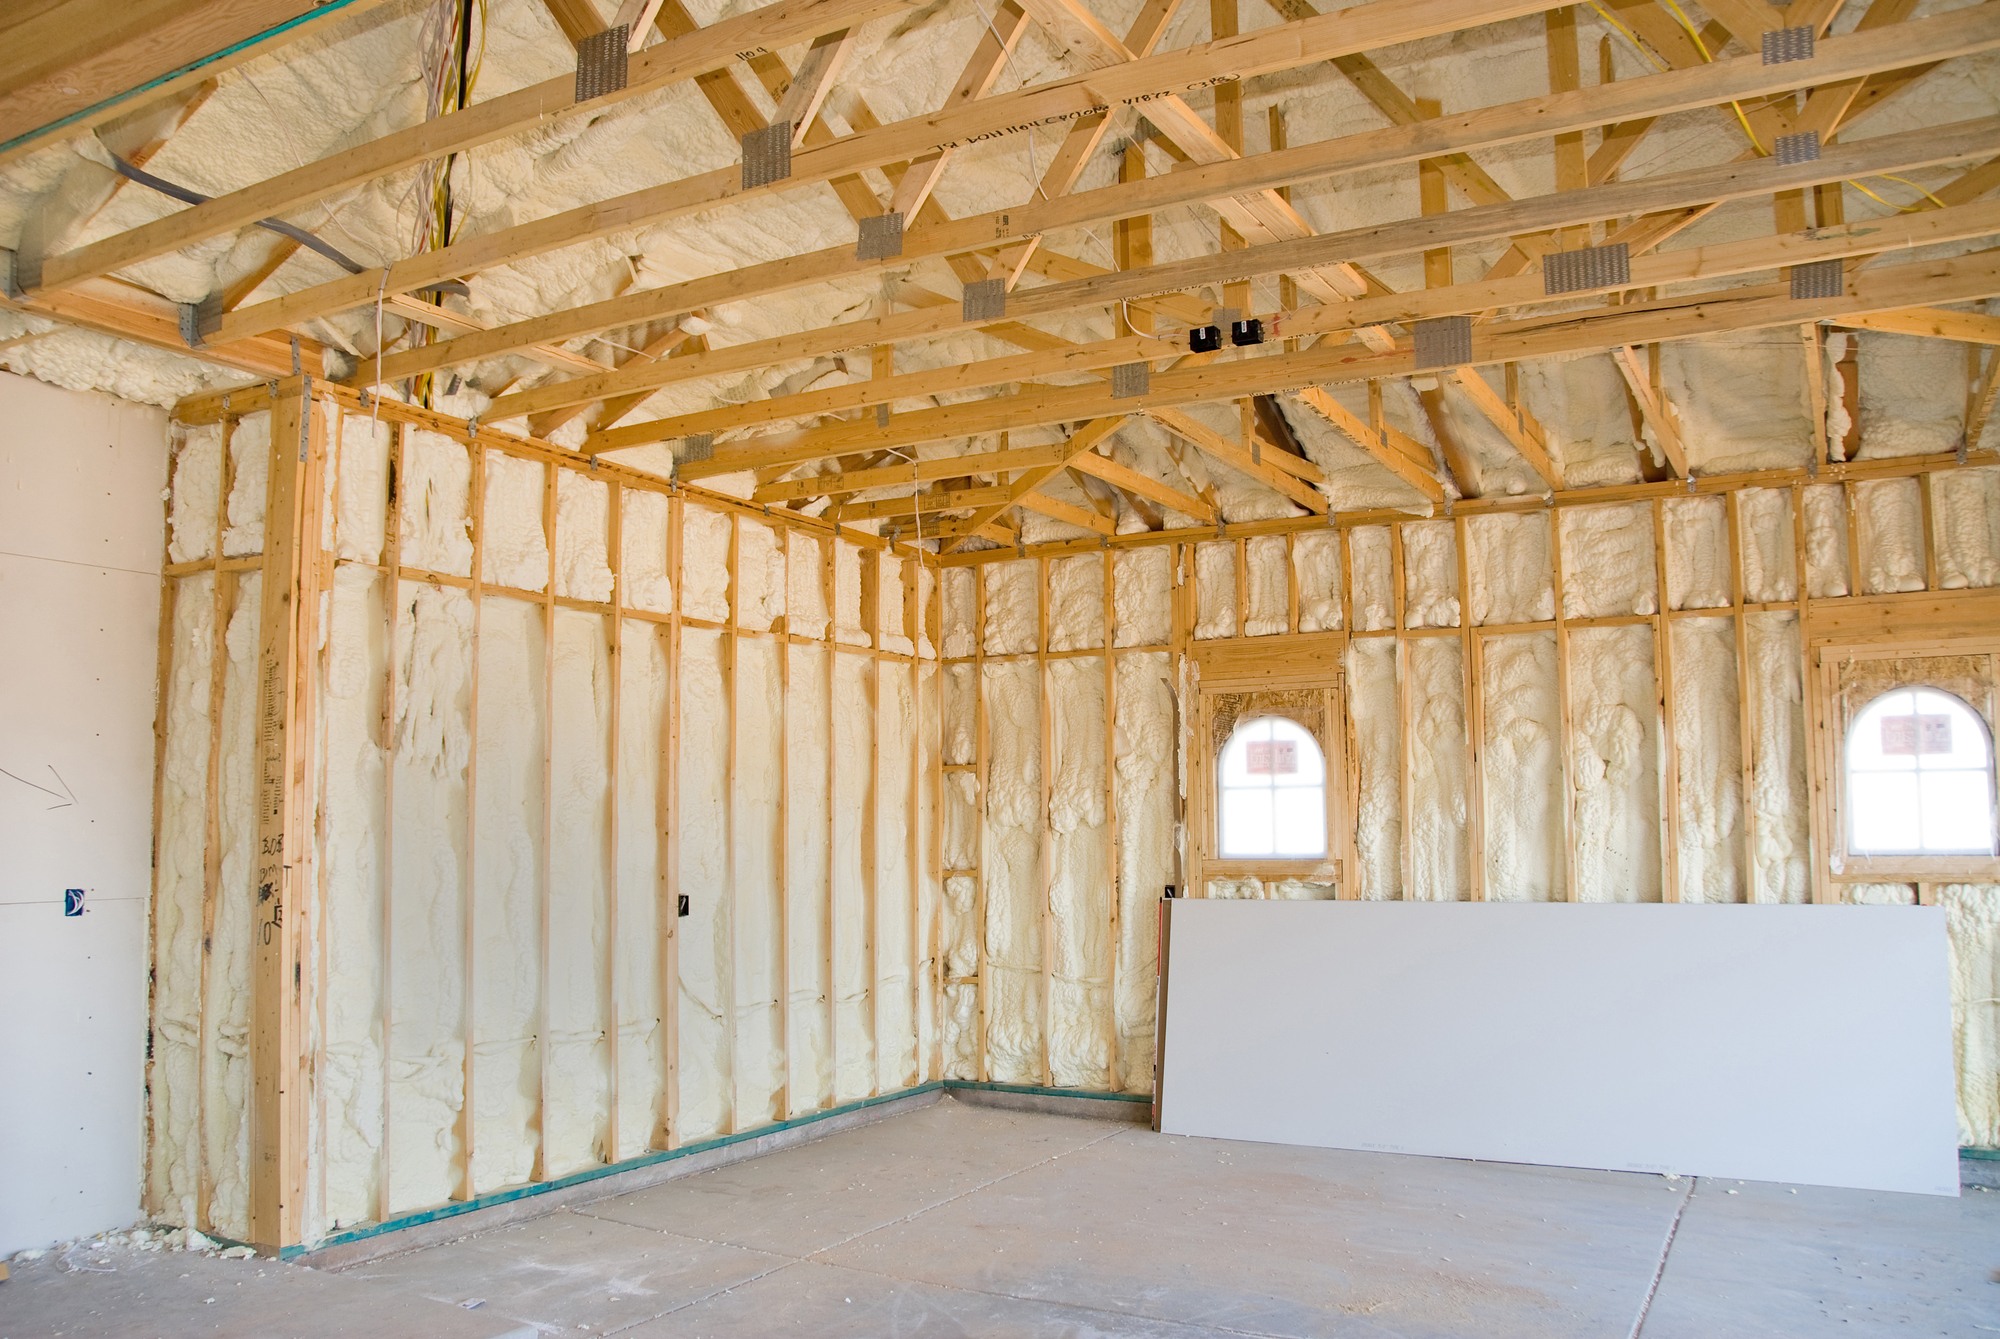 How to turn your pole barn kit into a guest house dixieland metals of alabama llc dothan - How put cement foundations ceilings ...